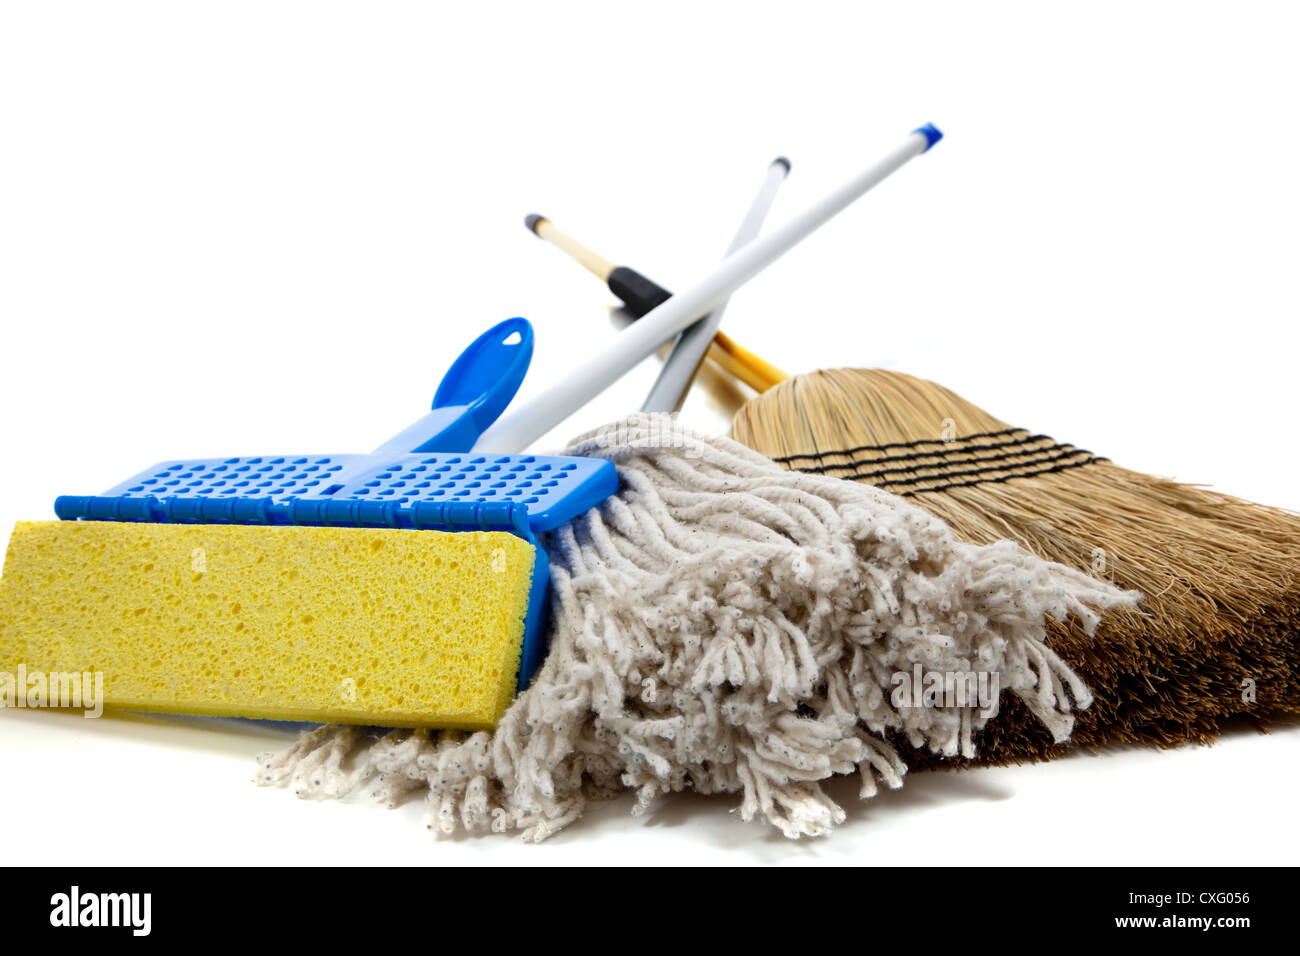 sponge and string mop with a straw broom - Stock Image